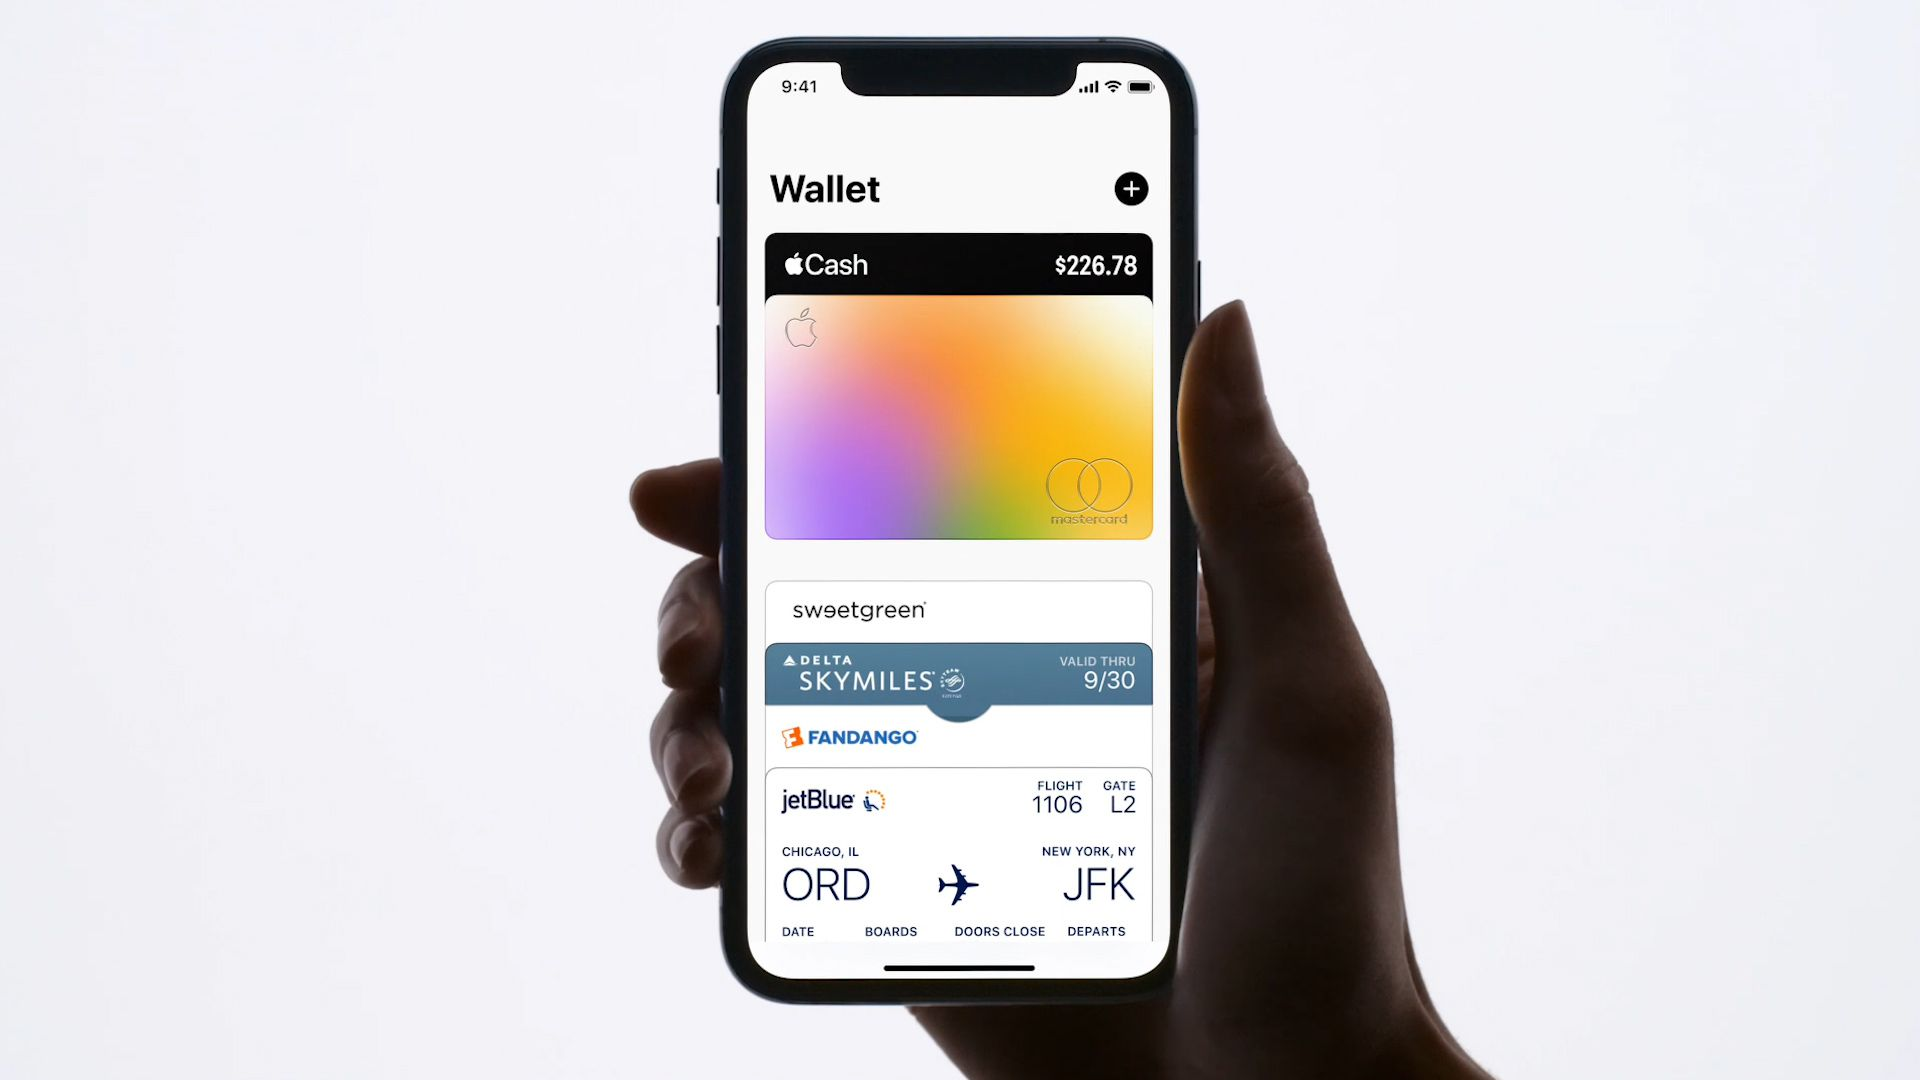 Apple announces Apple Card credit card - The Verge